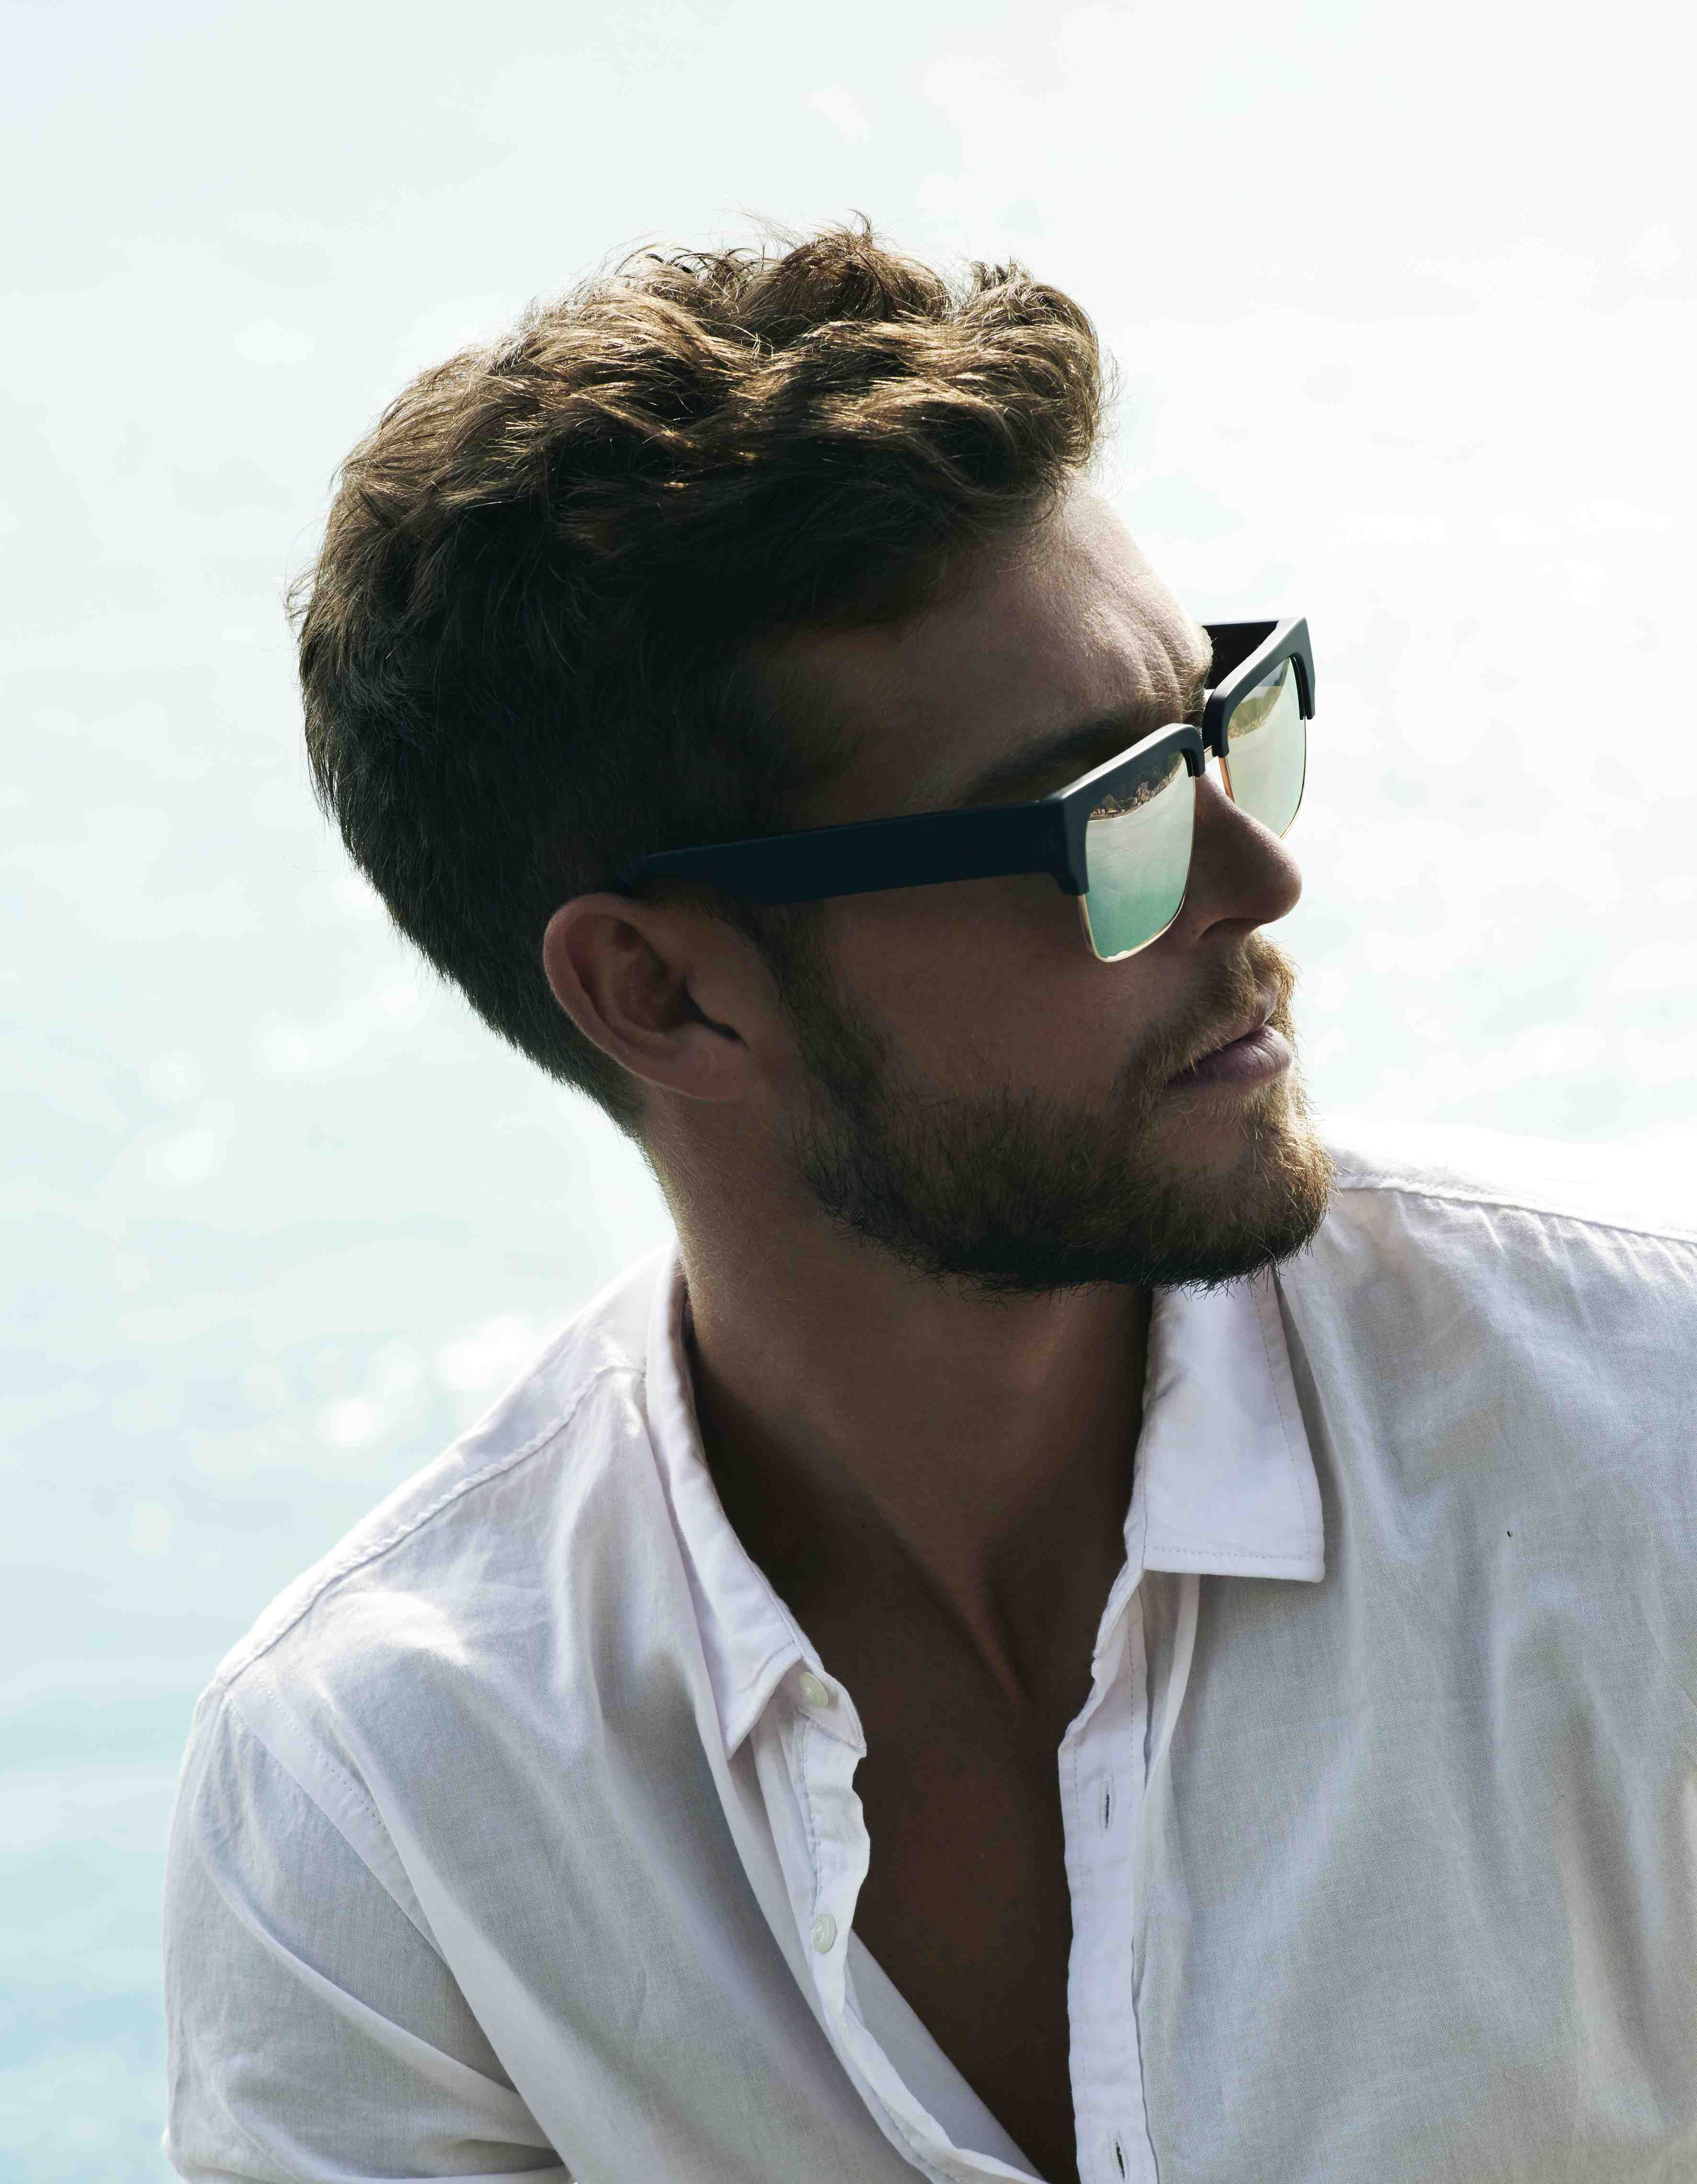 ee3115bc95 Sunday Somewhere DAYDREAM BELIEVERS Campaign - Little God Sunglasses ...